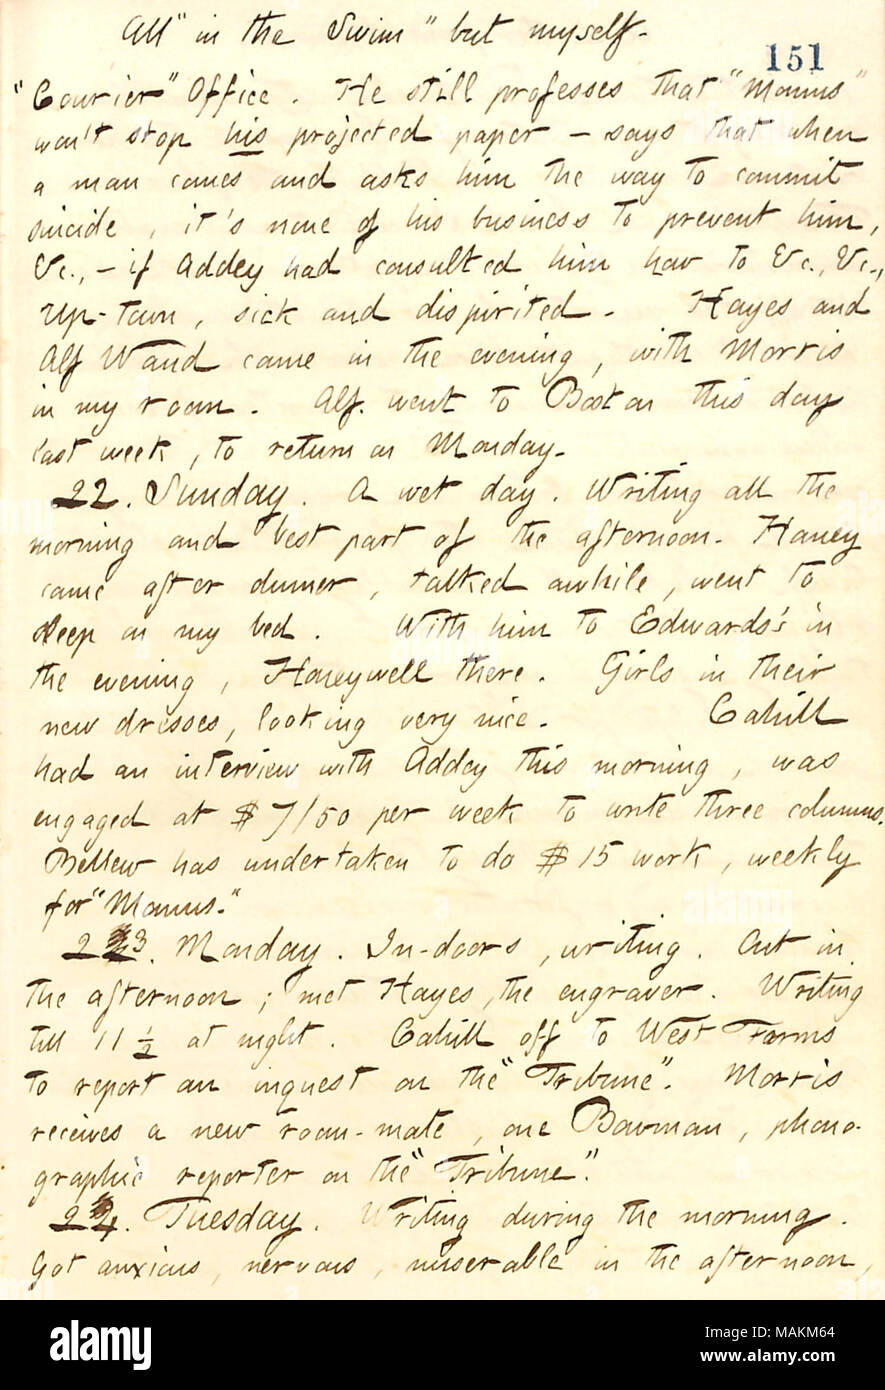 Regarding the people hired by Momus.  Transcription: All ?ǣin the Swim ? but myself. ?ǣCourier ? Office. He [Charles Briggs] still professes that ?ǣMomus ? won ?t stop his projected paper  ? says that when a man comes and asks him the way to commit suicide, it ?s none of his business to prevent him, &c.  ? if [Henry] Addey had consulted him how to &c., &c. Up-town, sick and dispirited. [Edward] Hayes and Alf Waud came in the evening, with [James] Morris in my room. Alf went to Boston this day last week, to return on Monday. 22. Sunday. A wet day. Writing all the morning and best part of the af - Stock Image